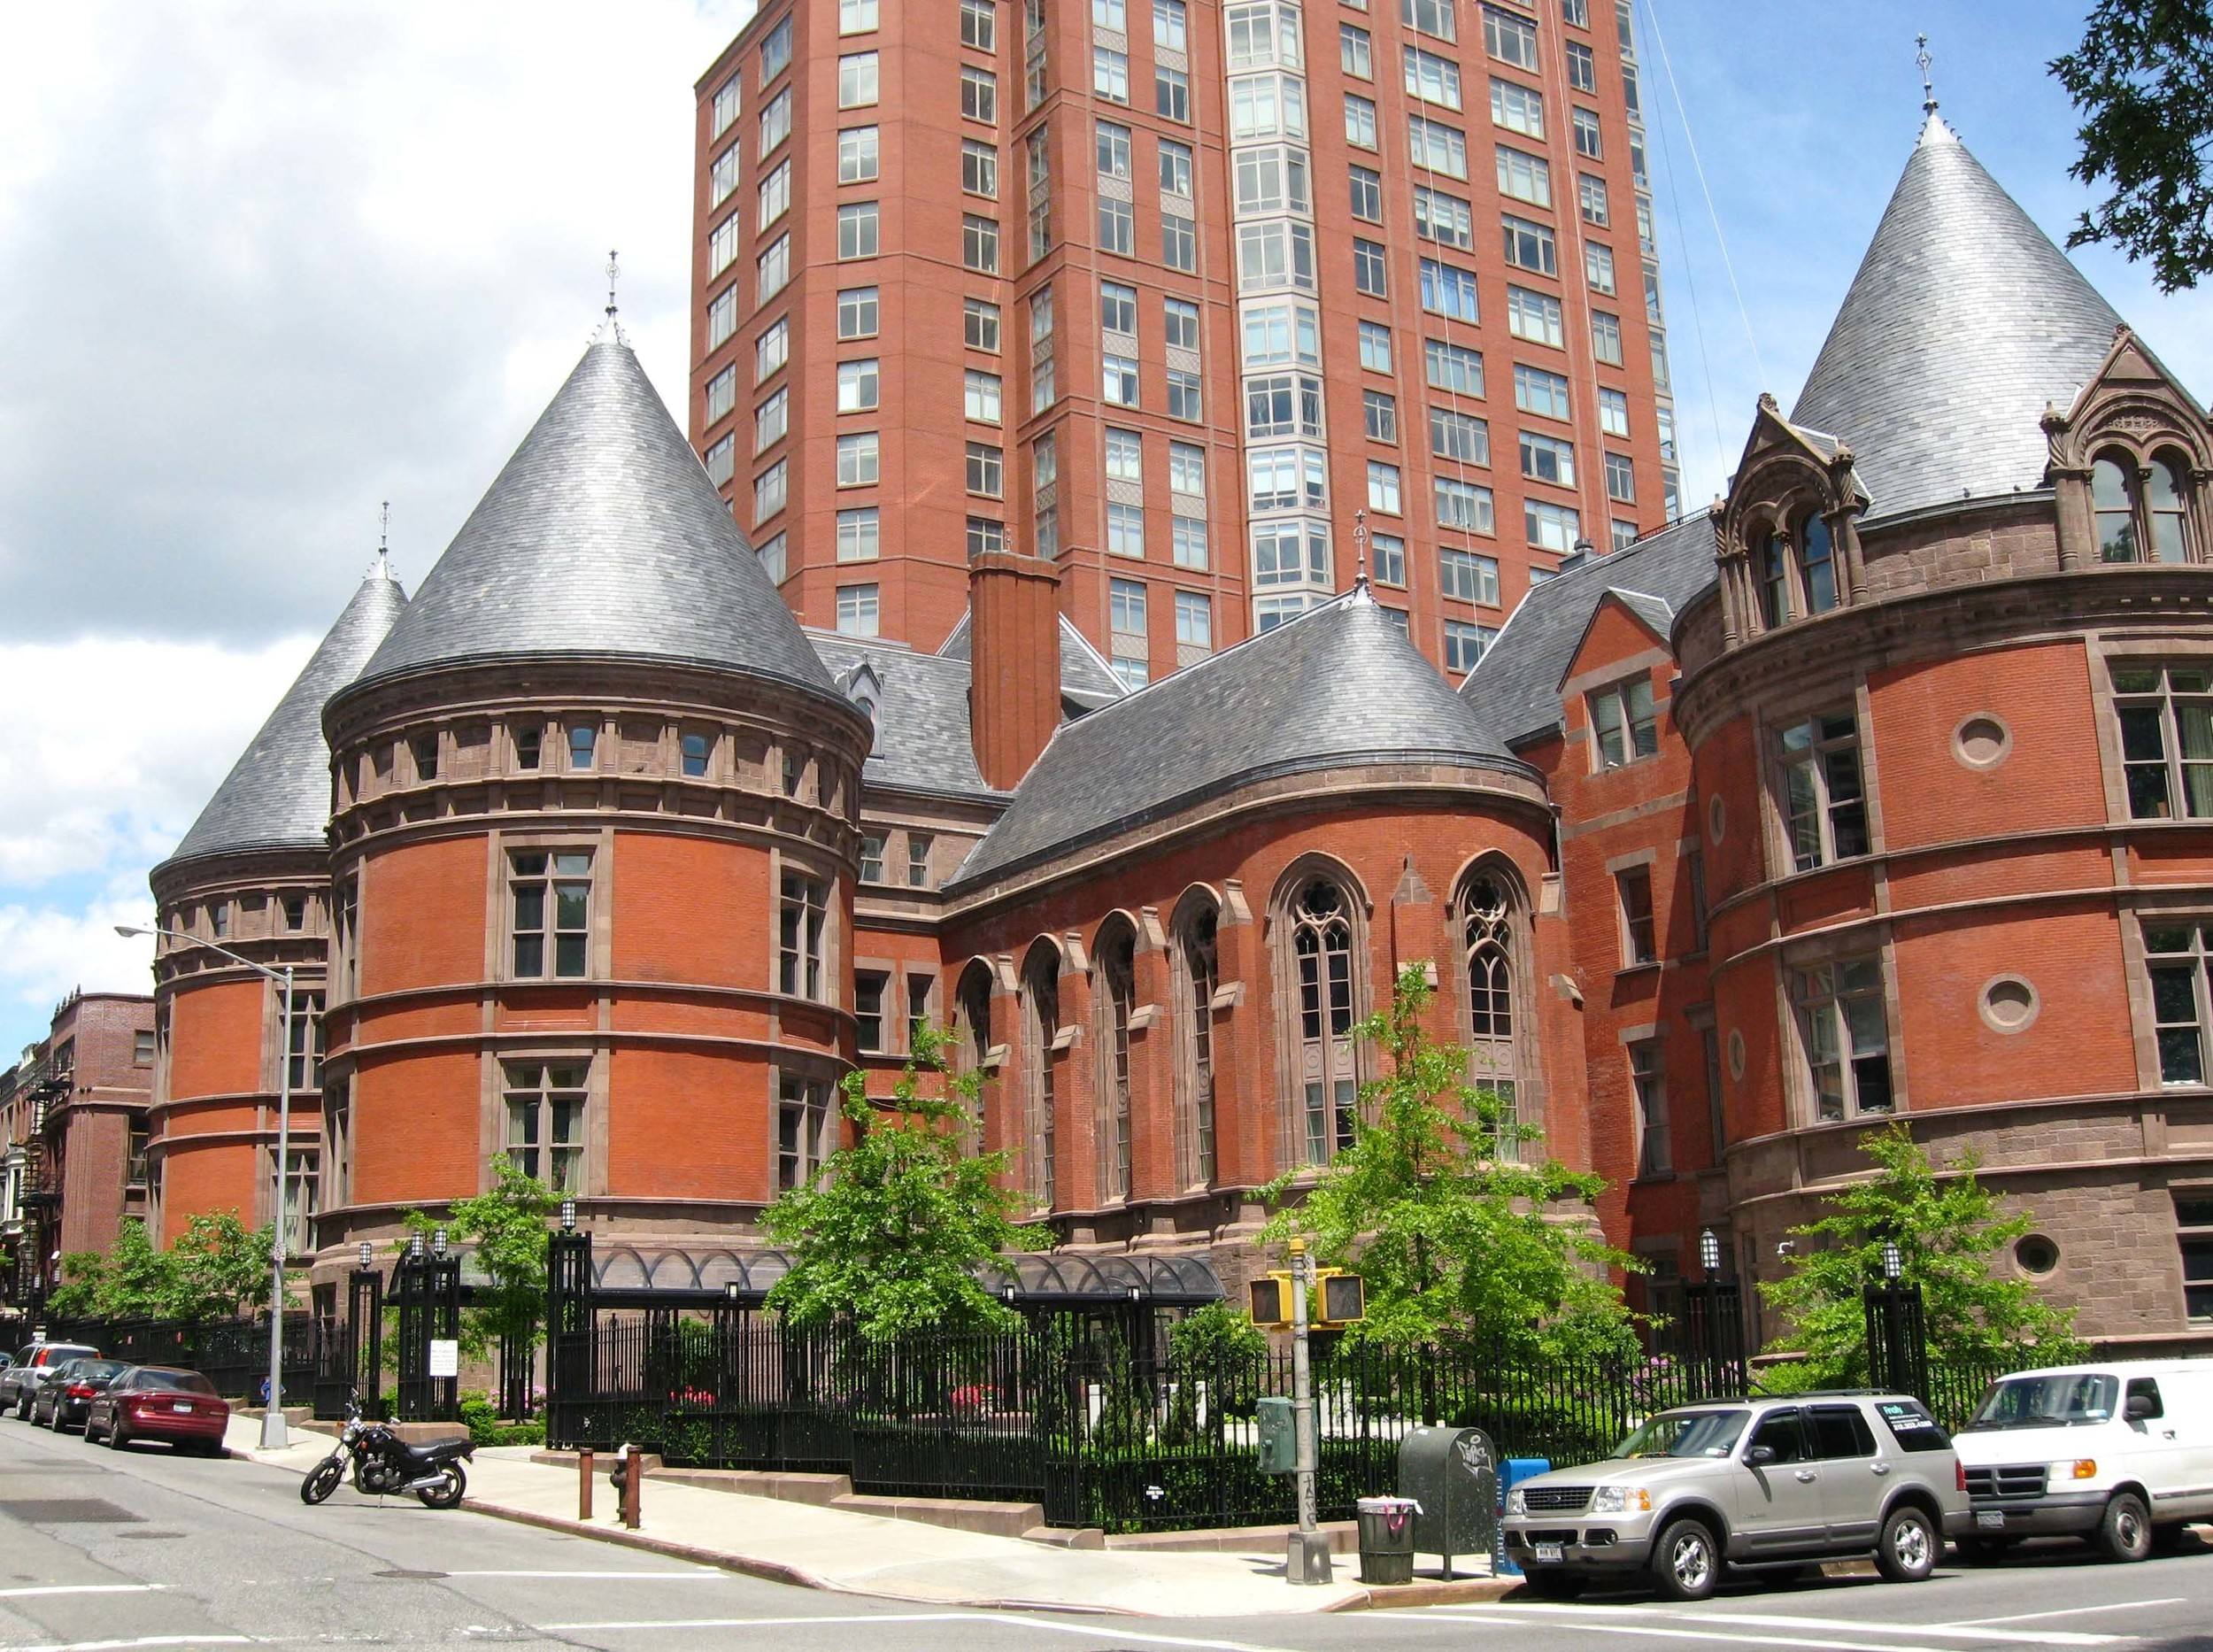 The country's first cancer hospital, New York Cancer Hospital, is at the end of our street as it was founded in 1884 to treat Ulysses S. Grant's throat cancer. It has now been redeveloped into luxury condominiums.